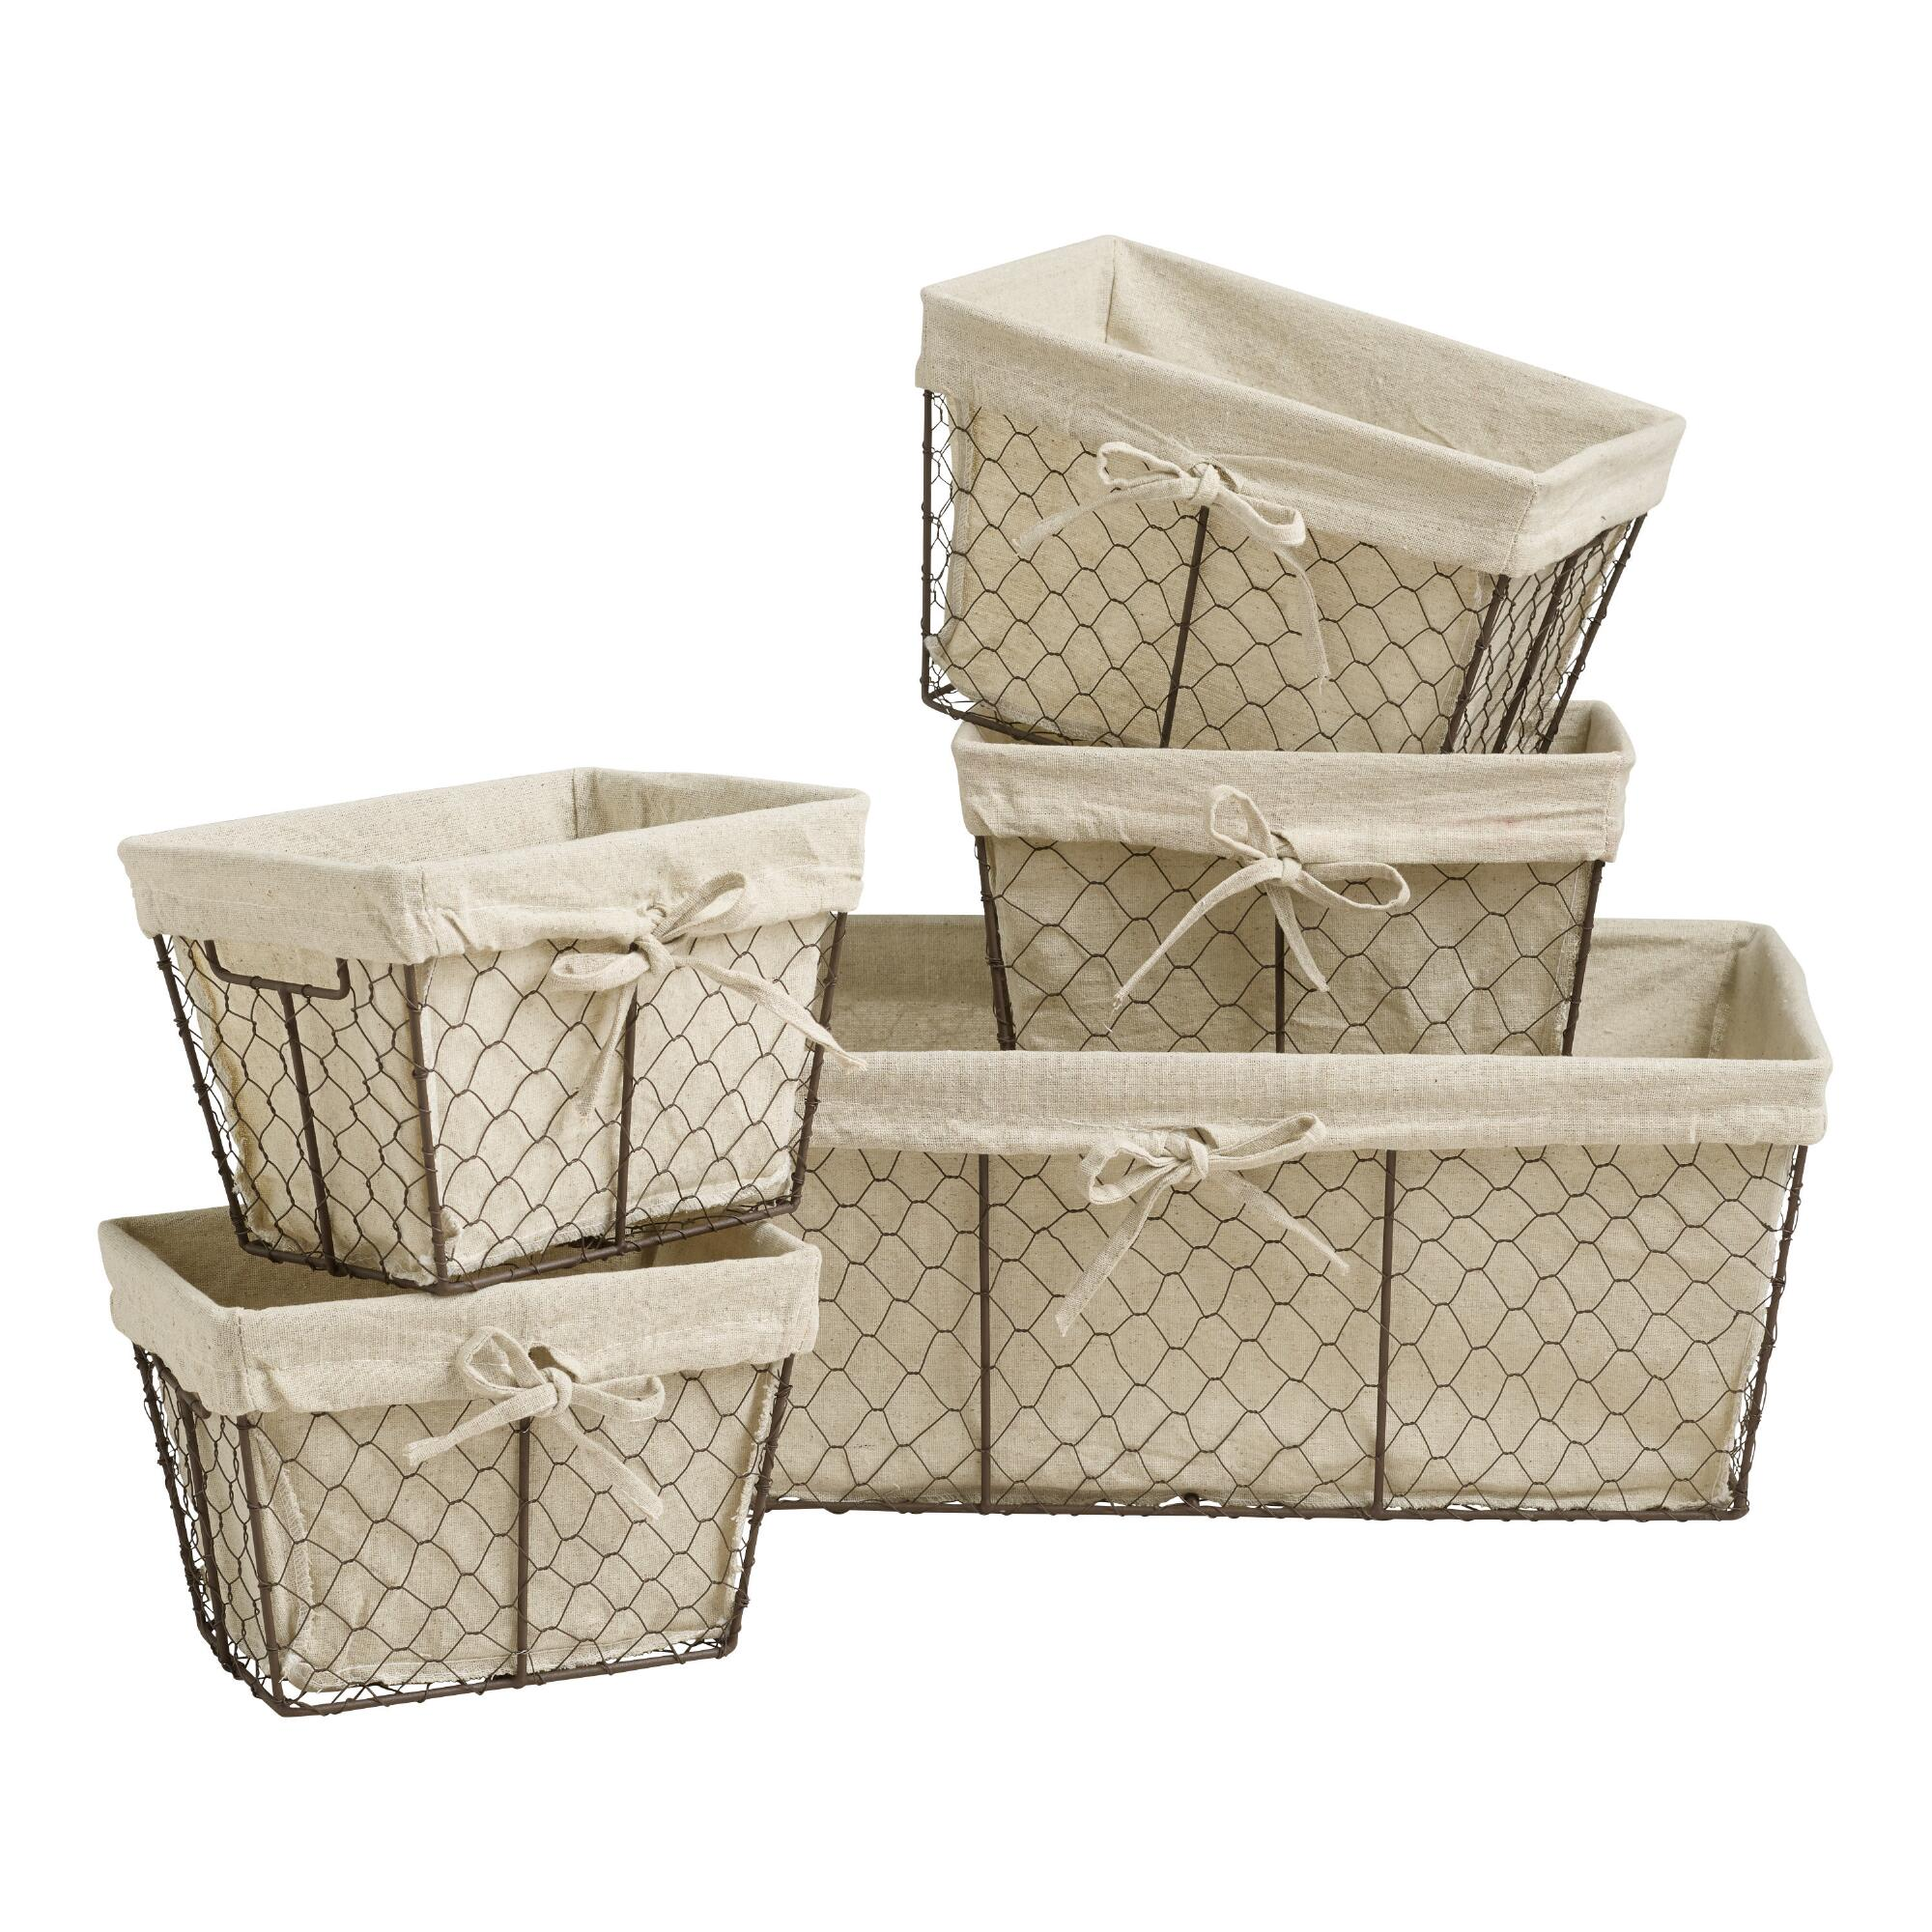 Charlotte Lined Wire Baskets: Natural - Metal - Large/Storage & Utility Baskets by World Market Large